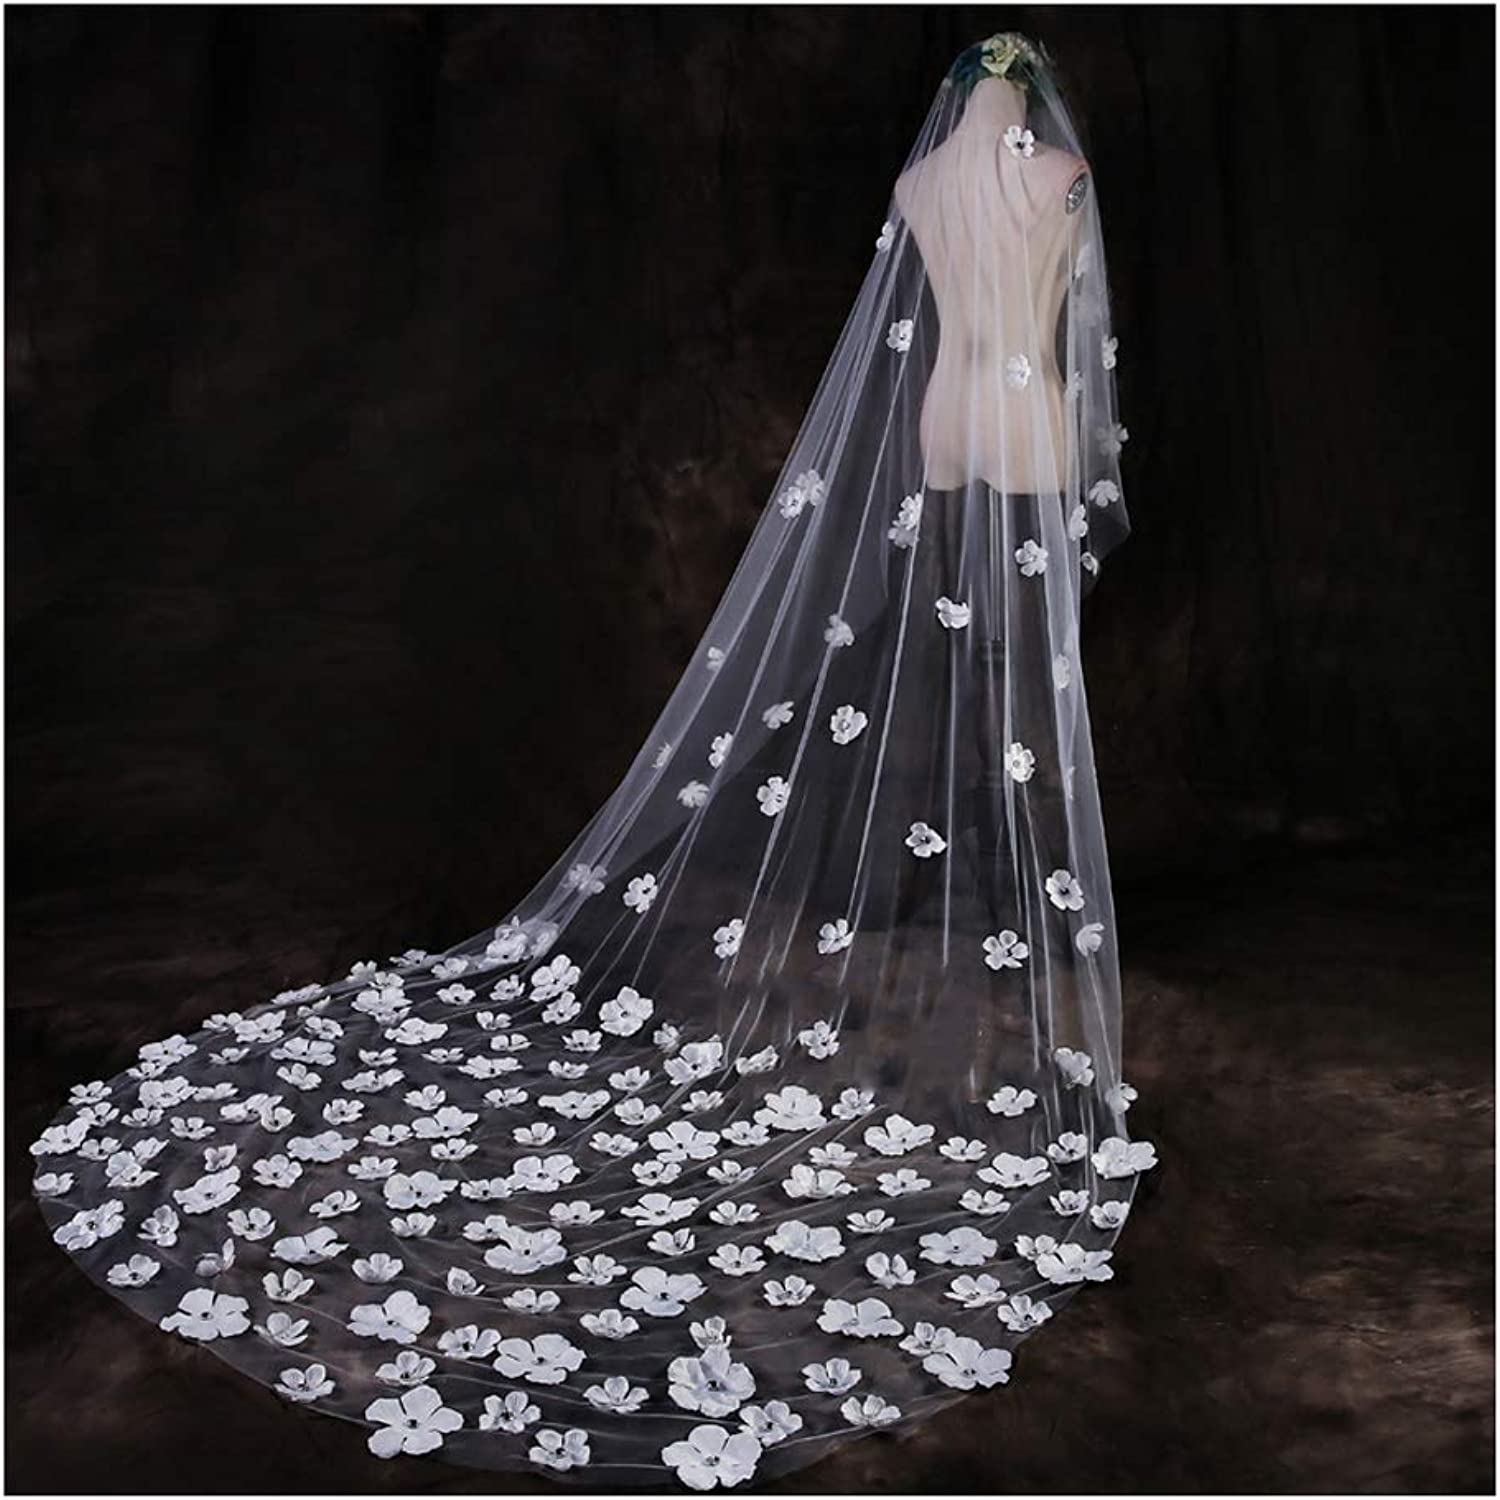 Fenghuavip 1T Tulle 3 Meters Long Cathedral Bridal Wedding Veils with Petals